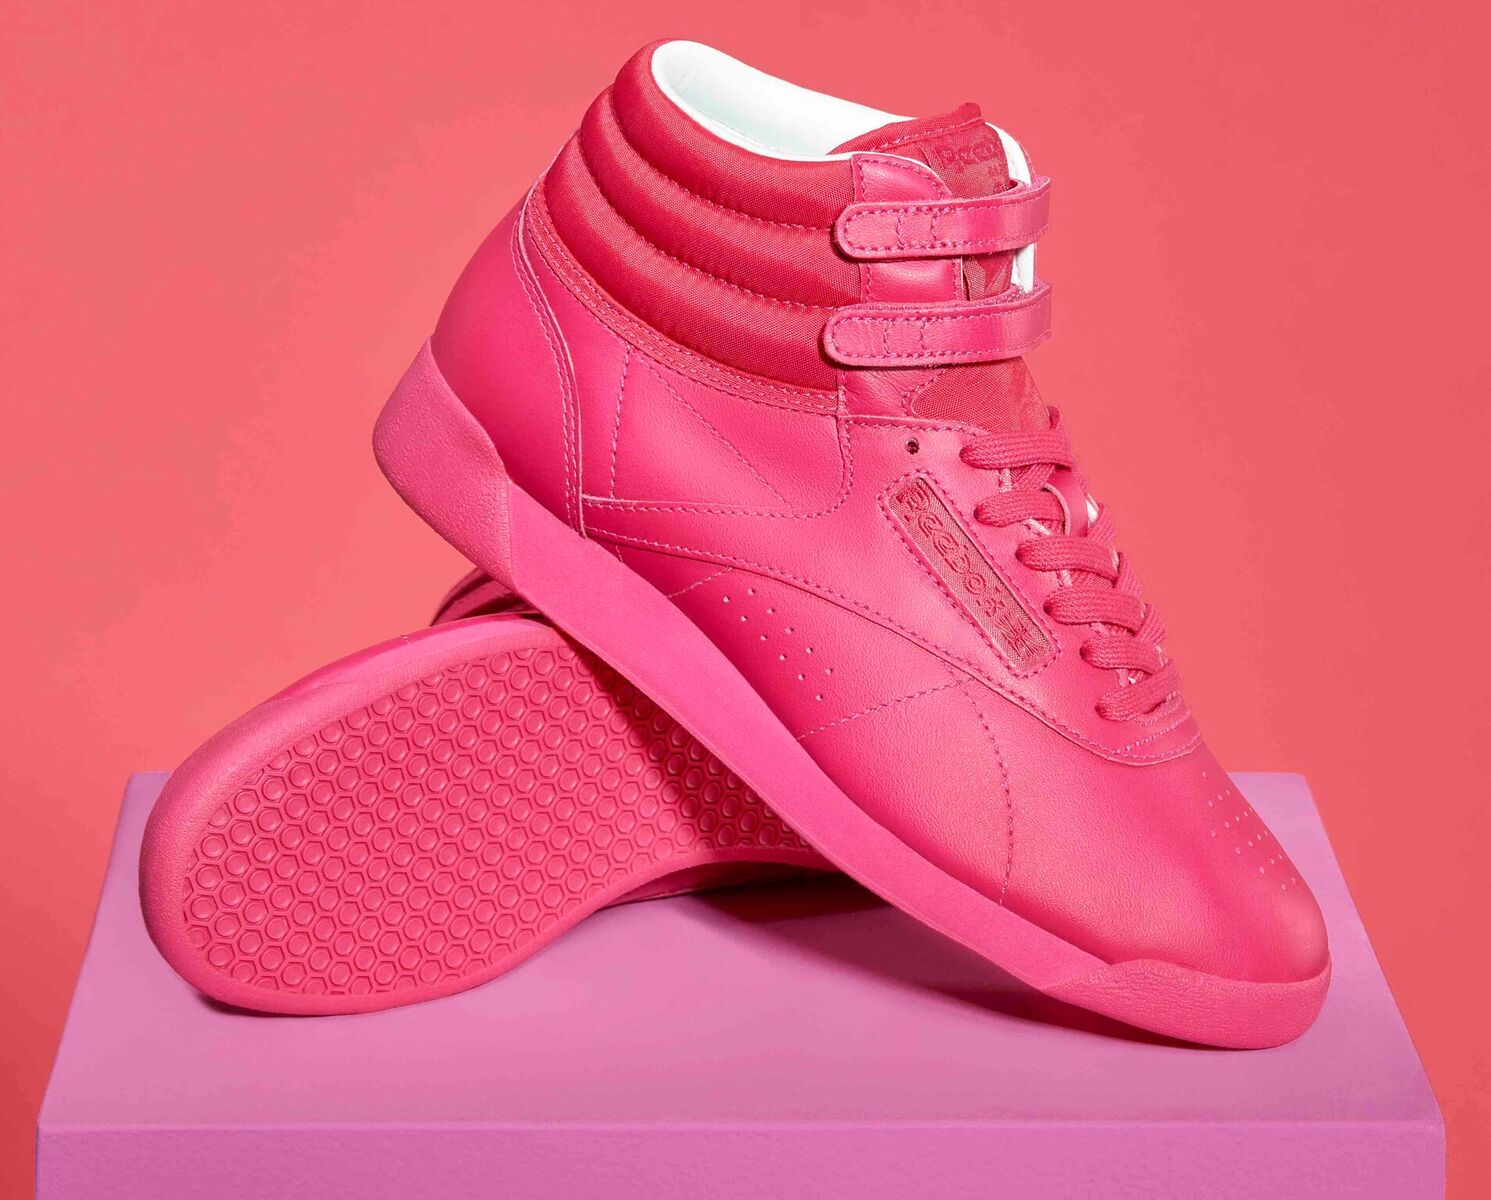 Check out the images below. Sneakers Lifestyle News reebok Teyana Taylor  Color Bomb Pack Reebok Freestyle 2c724a224